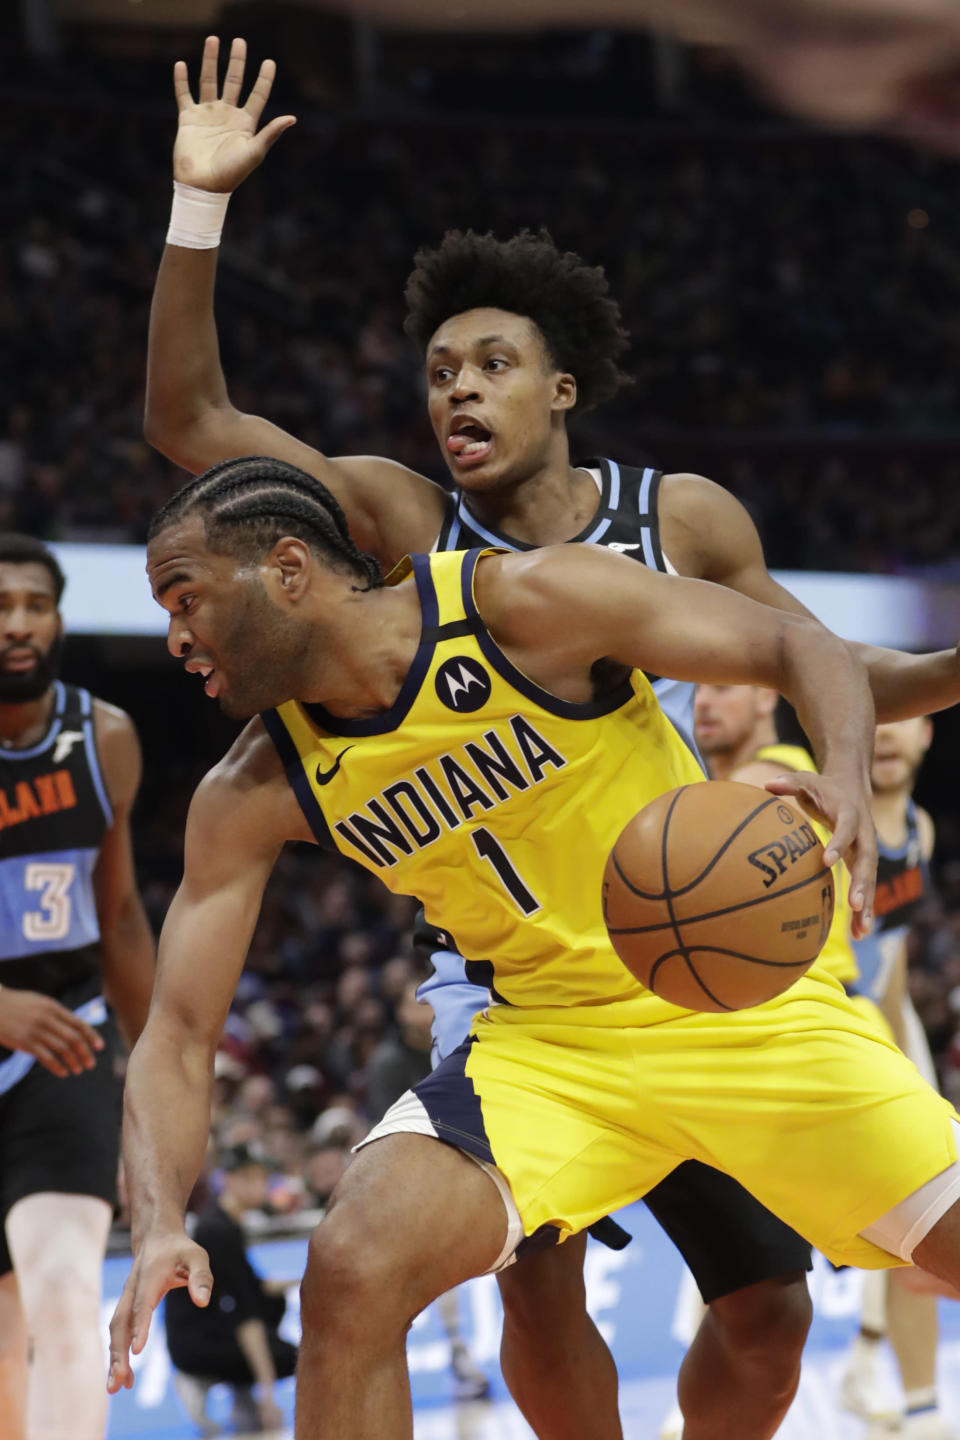 Indiana Pacers' T.J. Warren (1) drives past Cleveland Cavaliers' Collin Sexton (2) in the second half of an NBA basketball game, Saturday, Feb. 29, 2020, in Cleveland. Indiana won 113-104. (AP Photo/Tony Dejak)